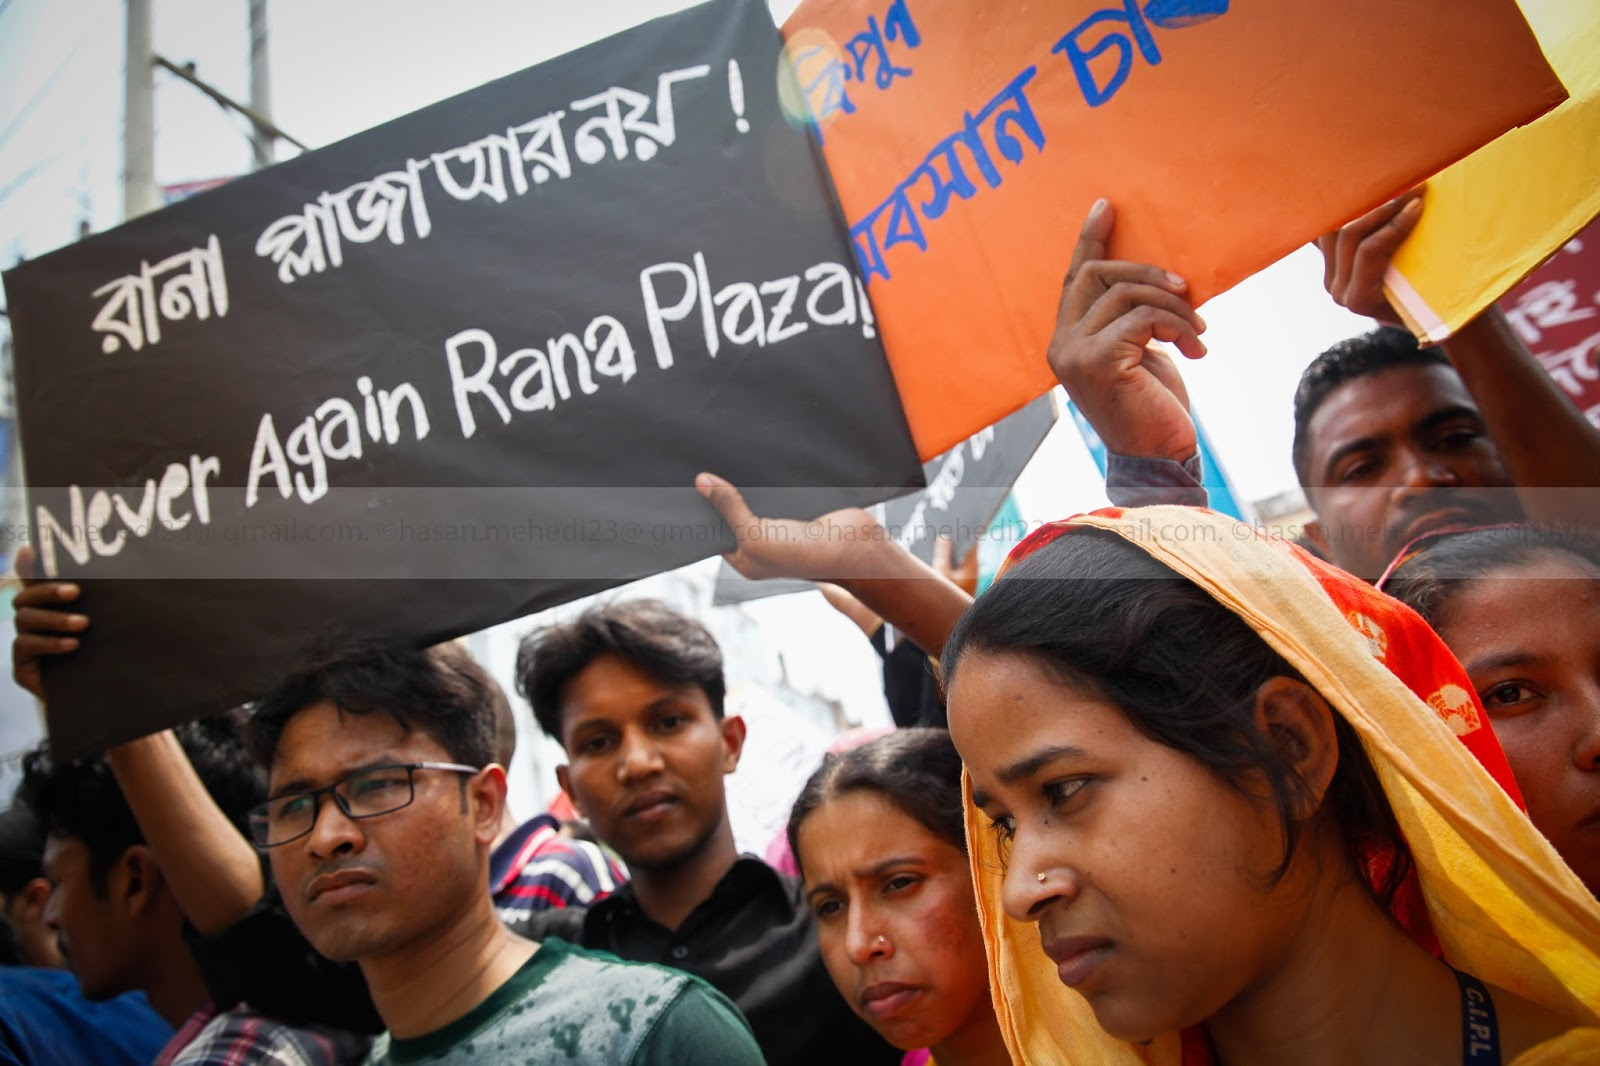 bangladesh would rana plaza be a game changer essay The bangladesh accord on fire and building safety is a transnational governance approach towards implementing factory safety standards in the bangladeshi garment sector some commentators argue that the accord is a 'game changer' in times of corporate social responsibility (csr), especially.